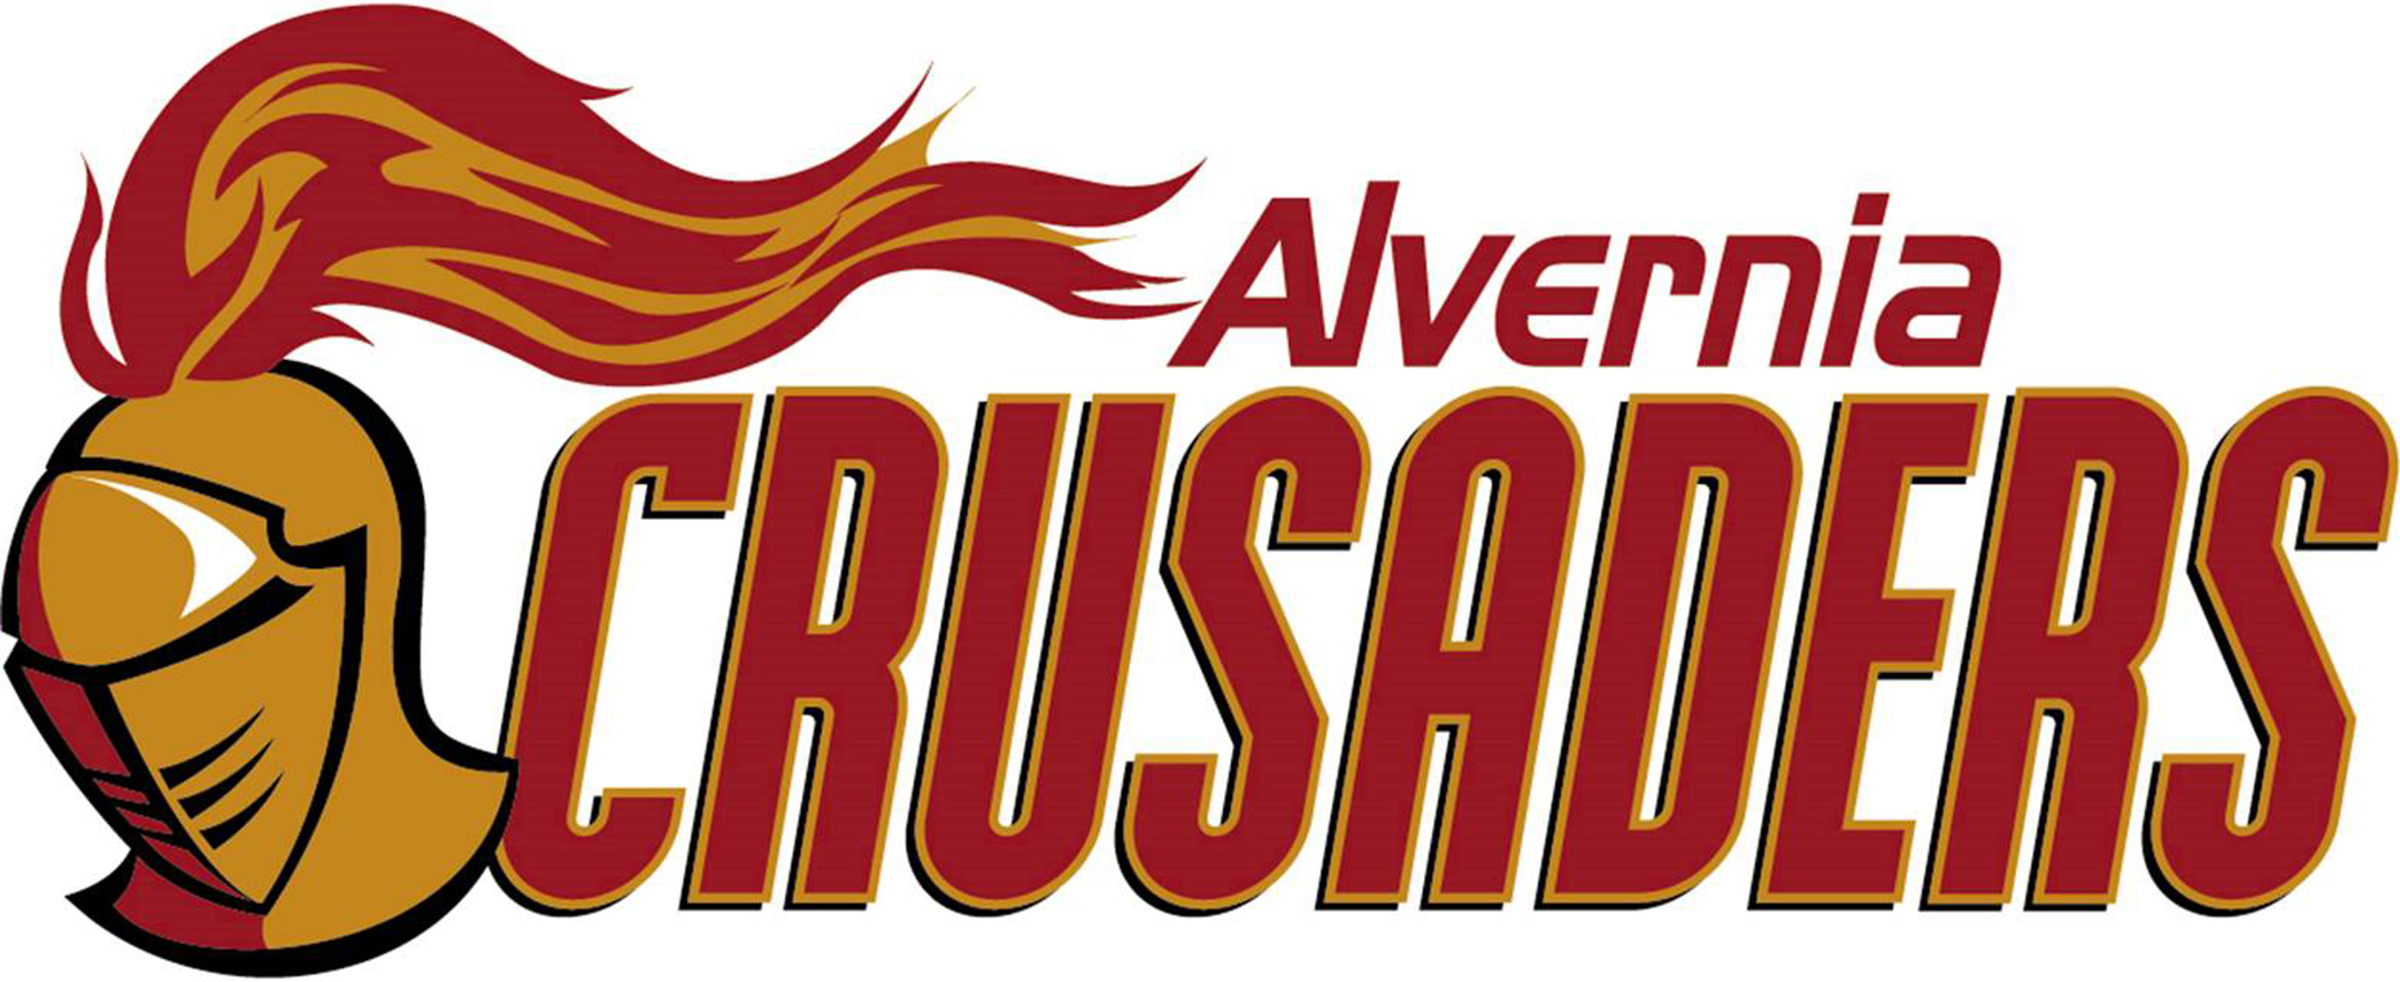 The Alvernia University logo before the school's nickname was changed.